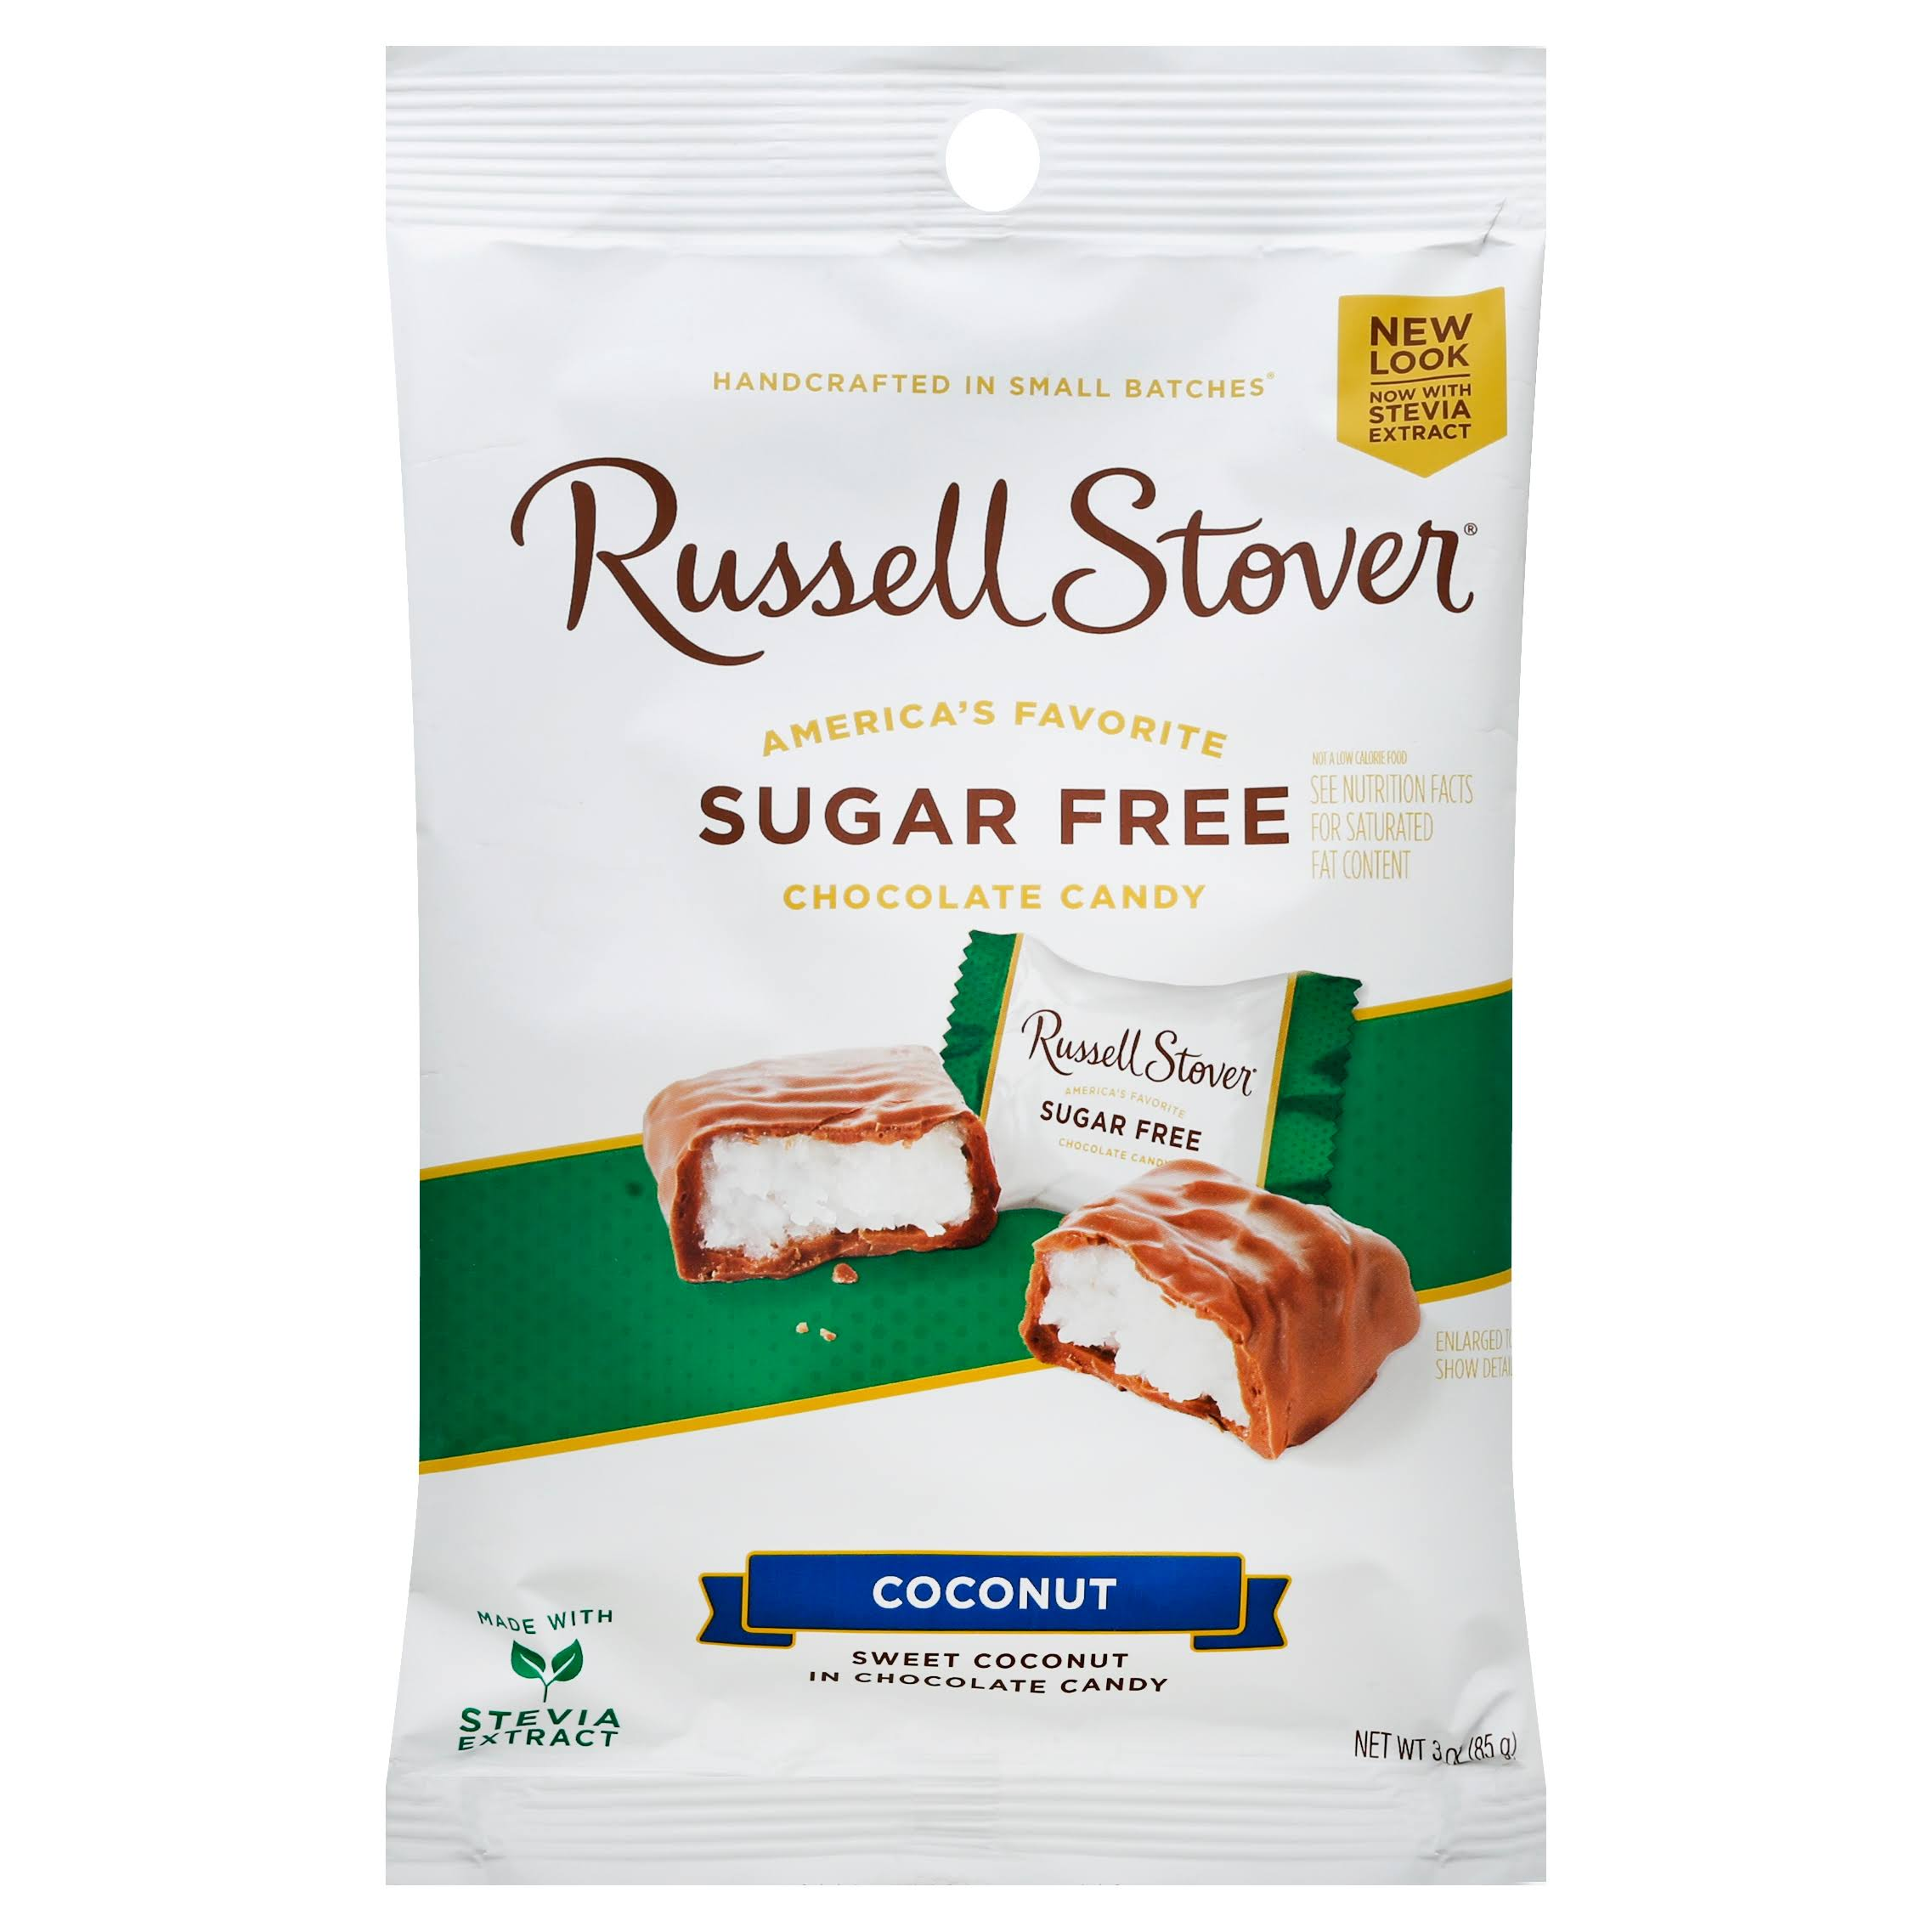 Russell Stover Sugar Free Coconut Covered in Chocolate Candy - 3oz